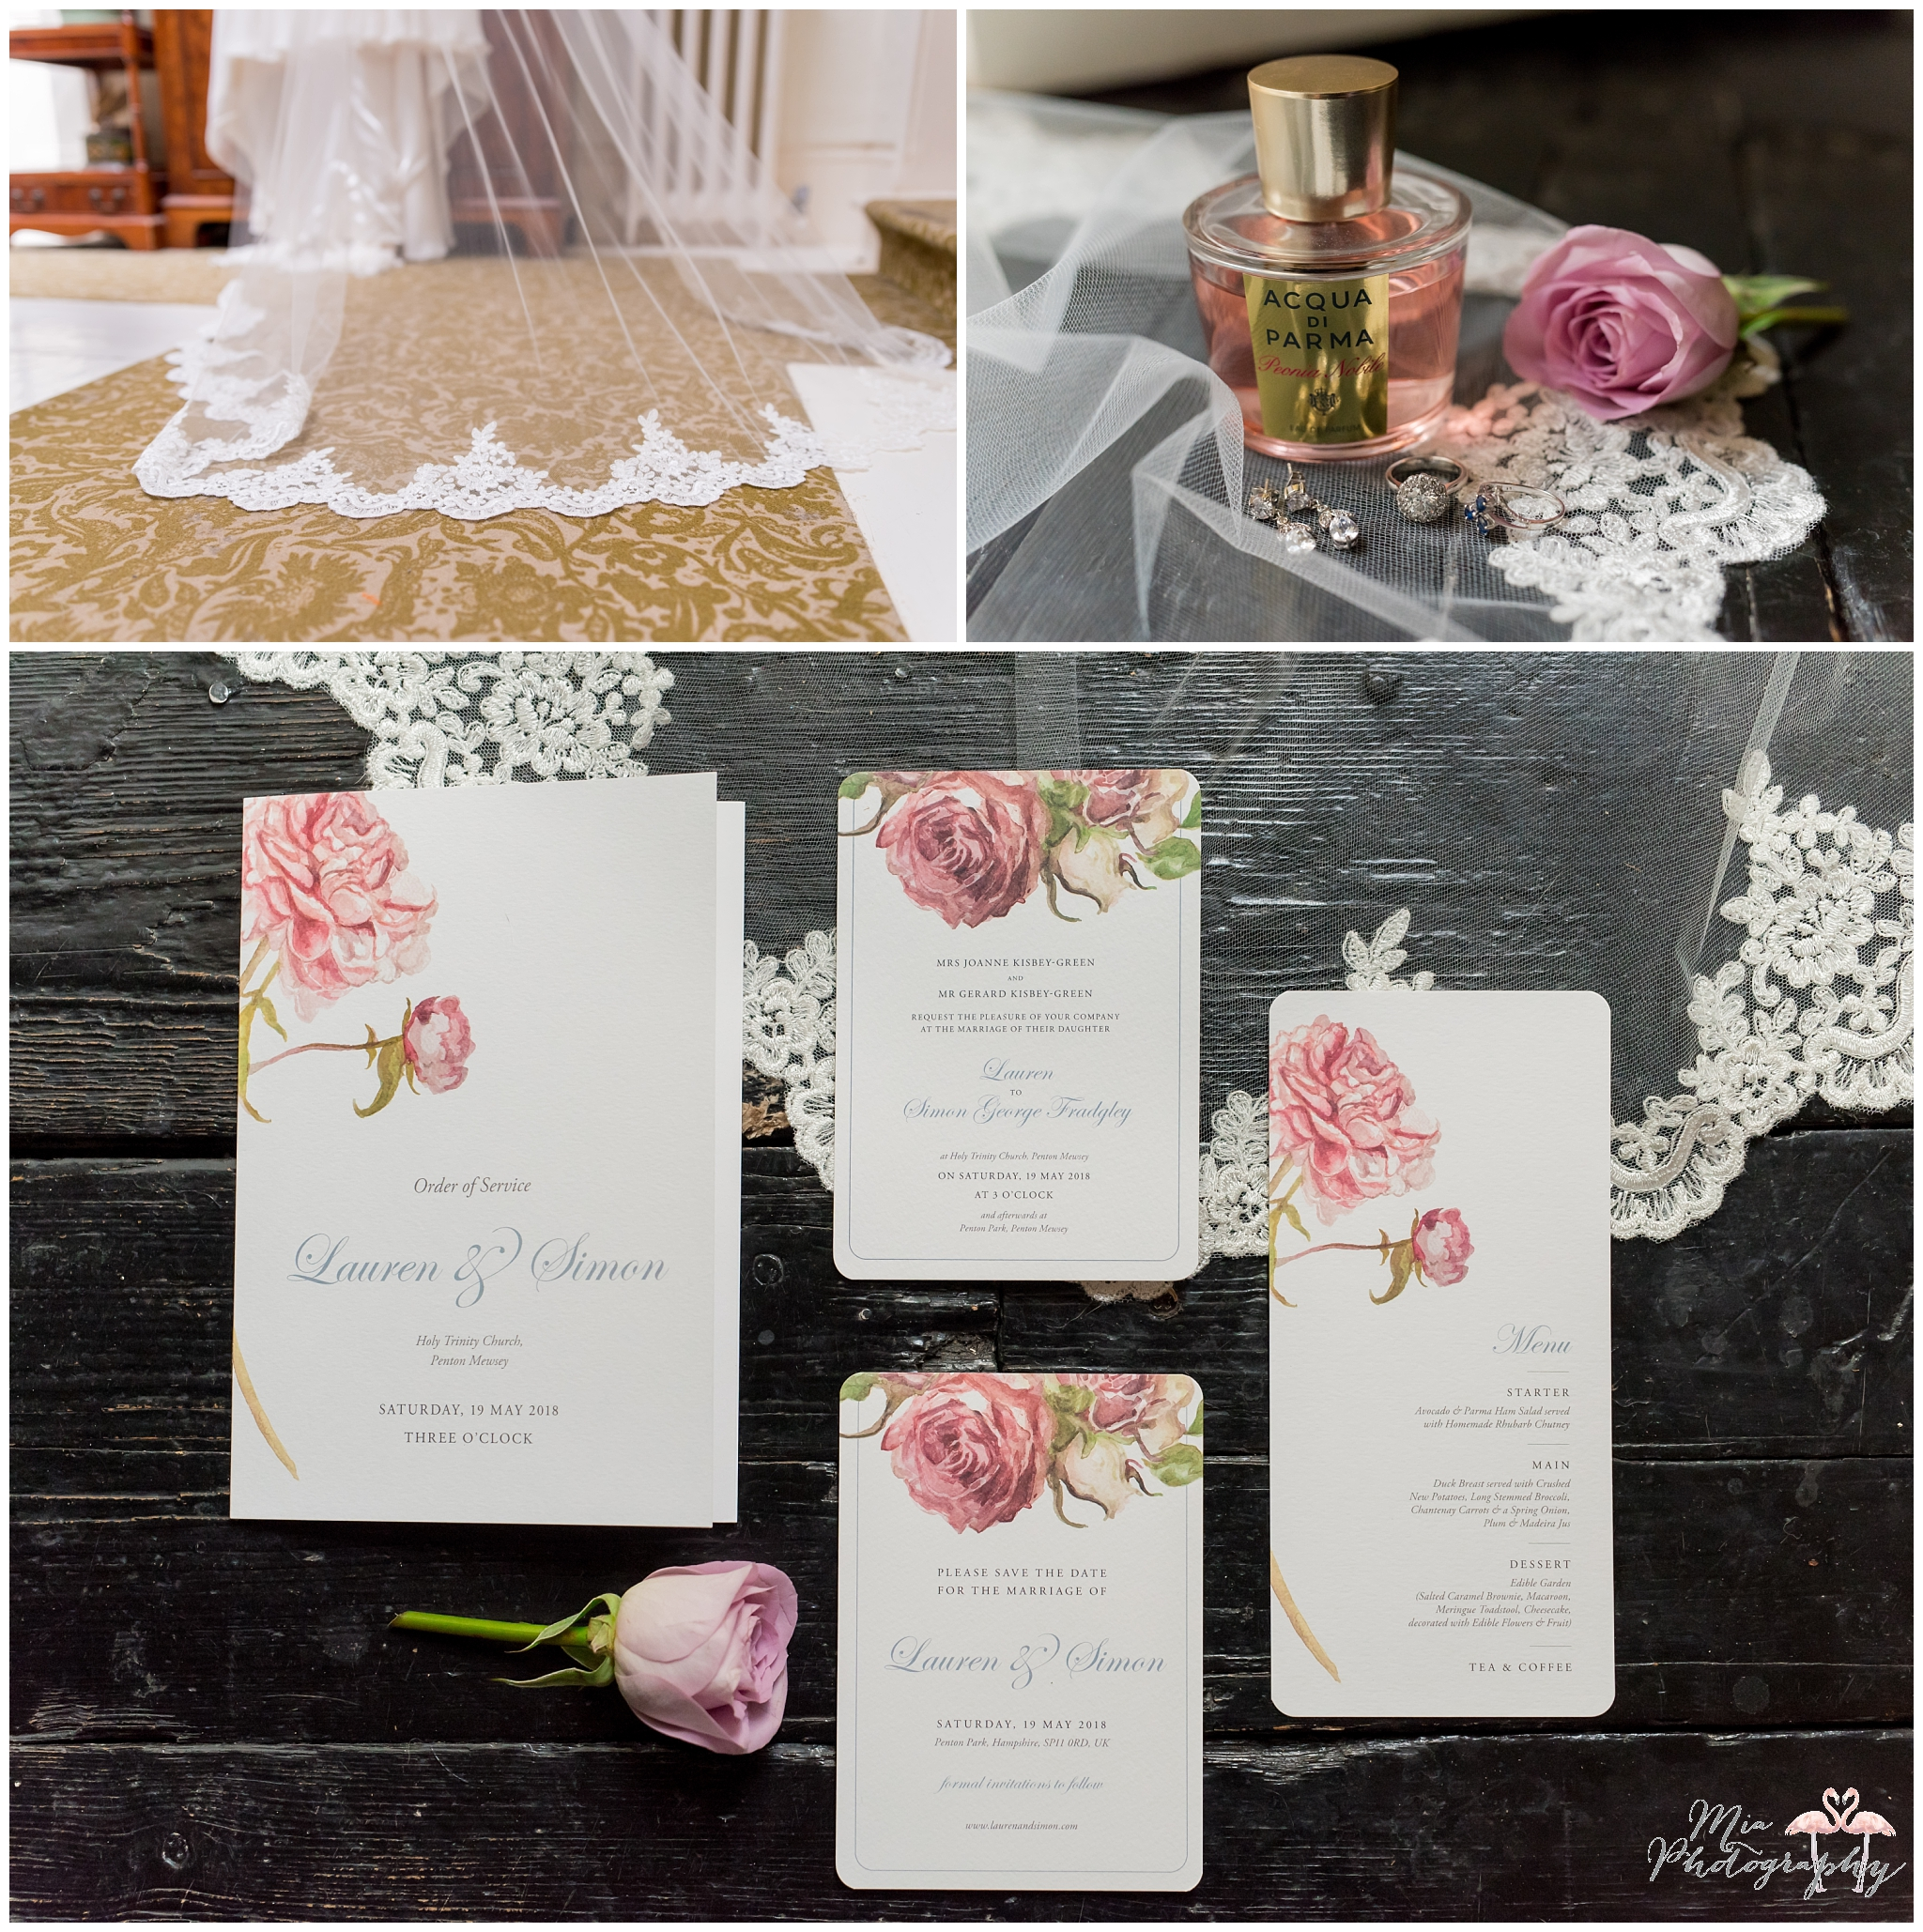 Wedding details at Penton Park